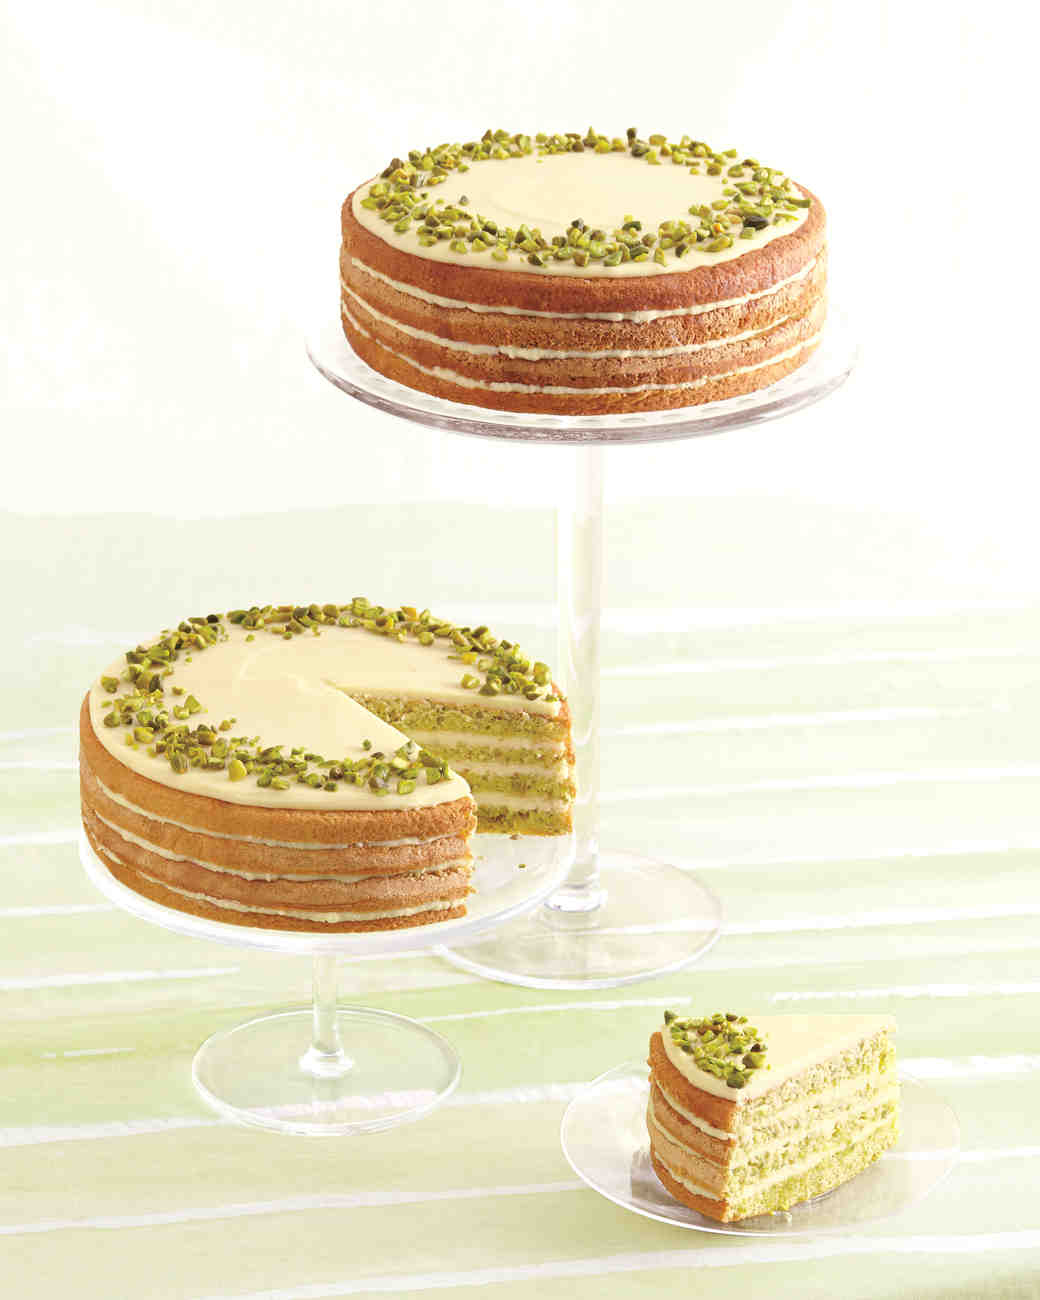 wedding-cake-pistachio-295-d111828-comp.jpg